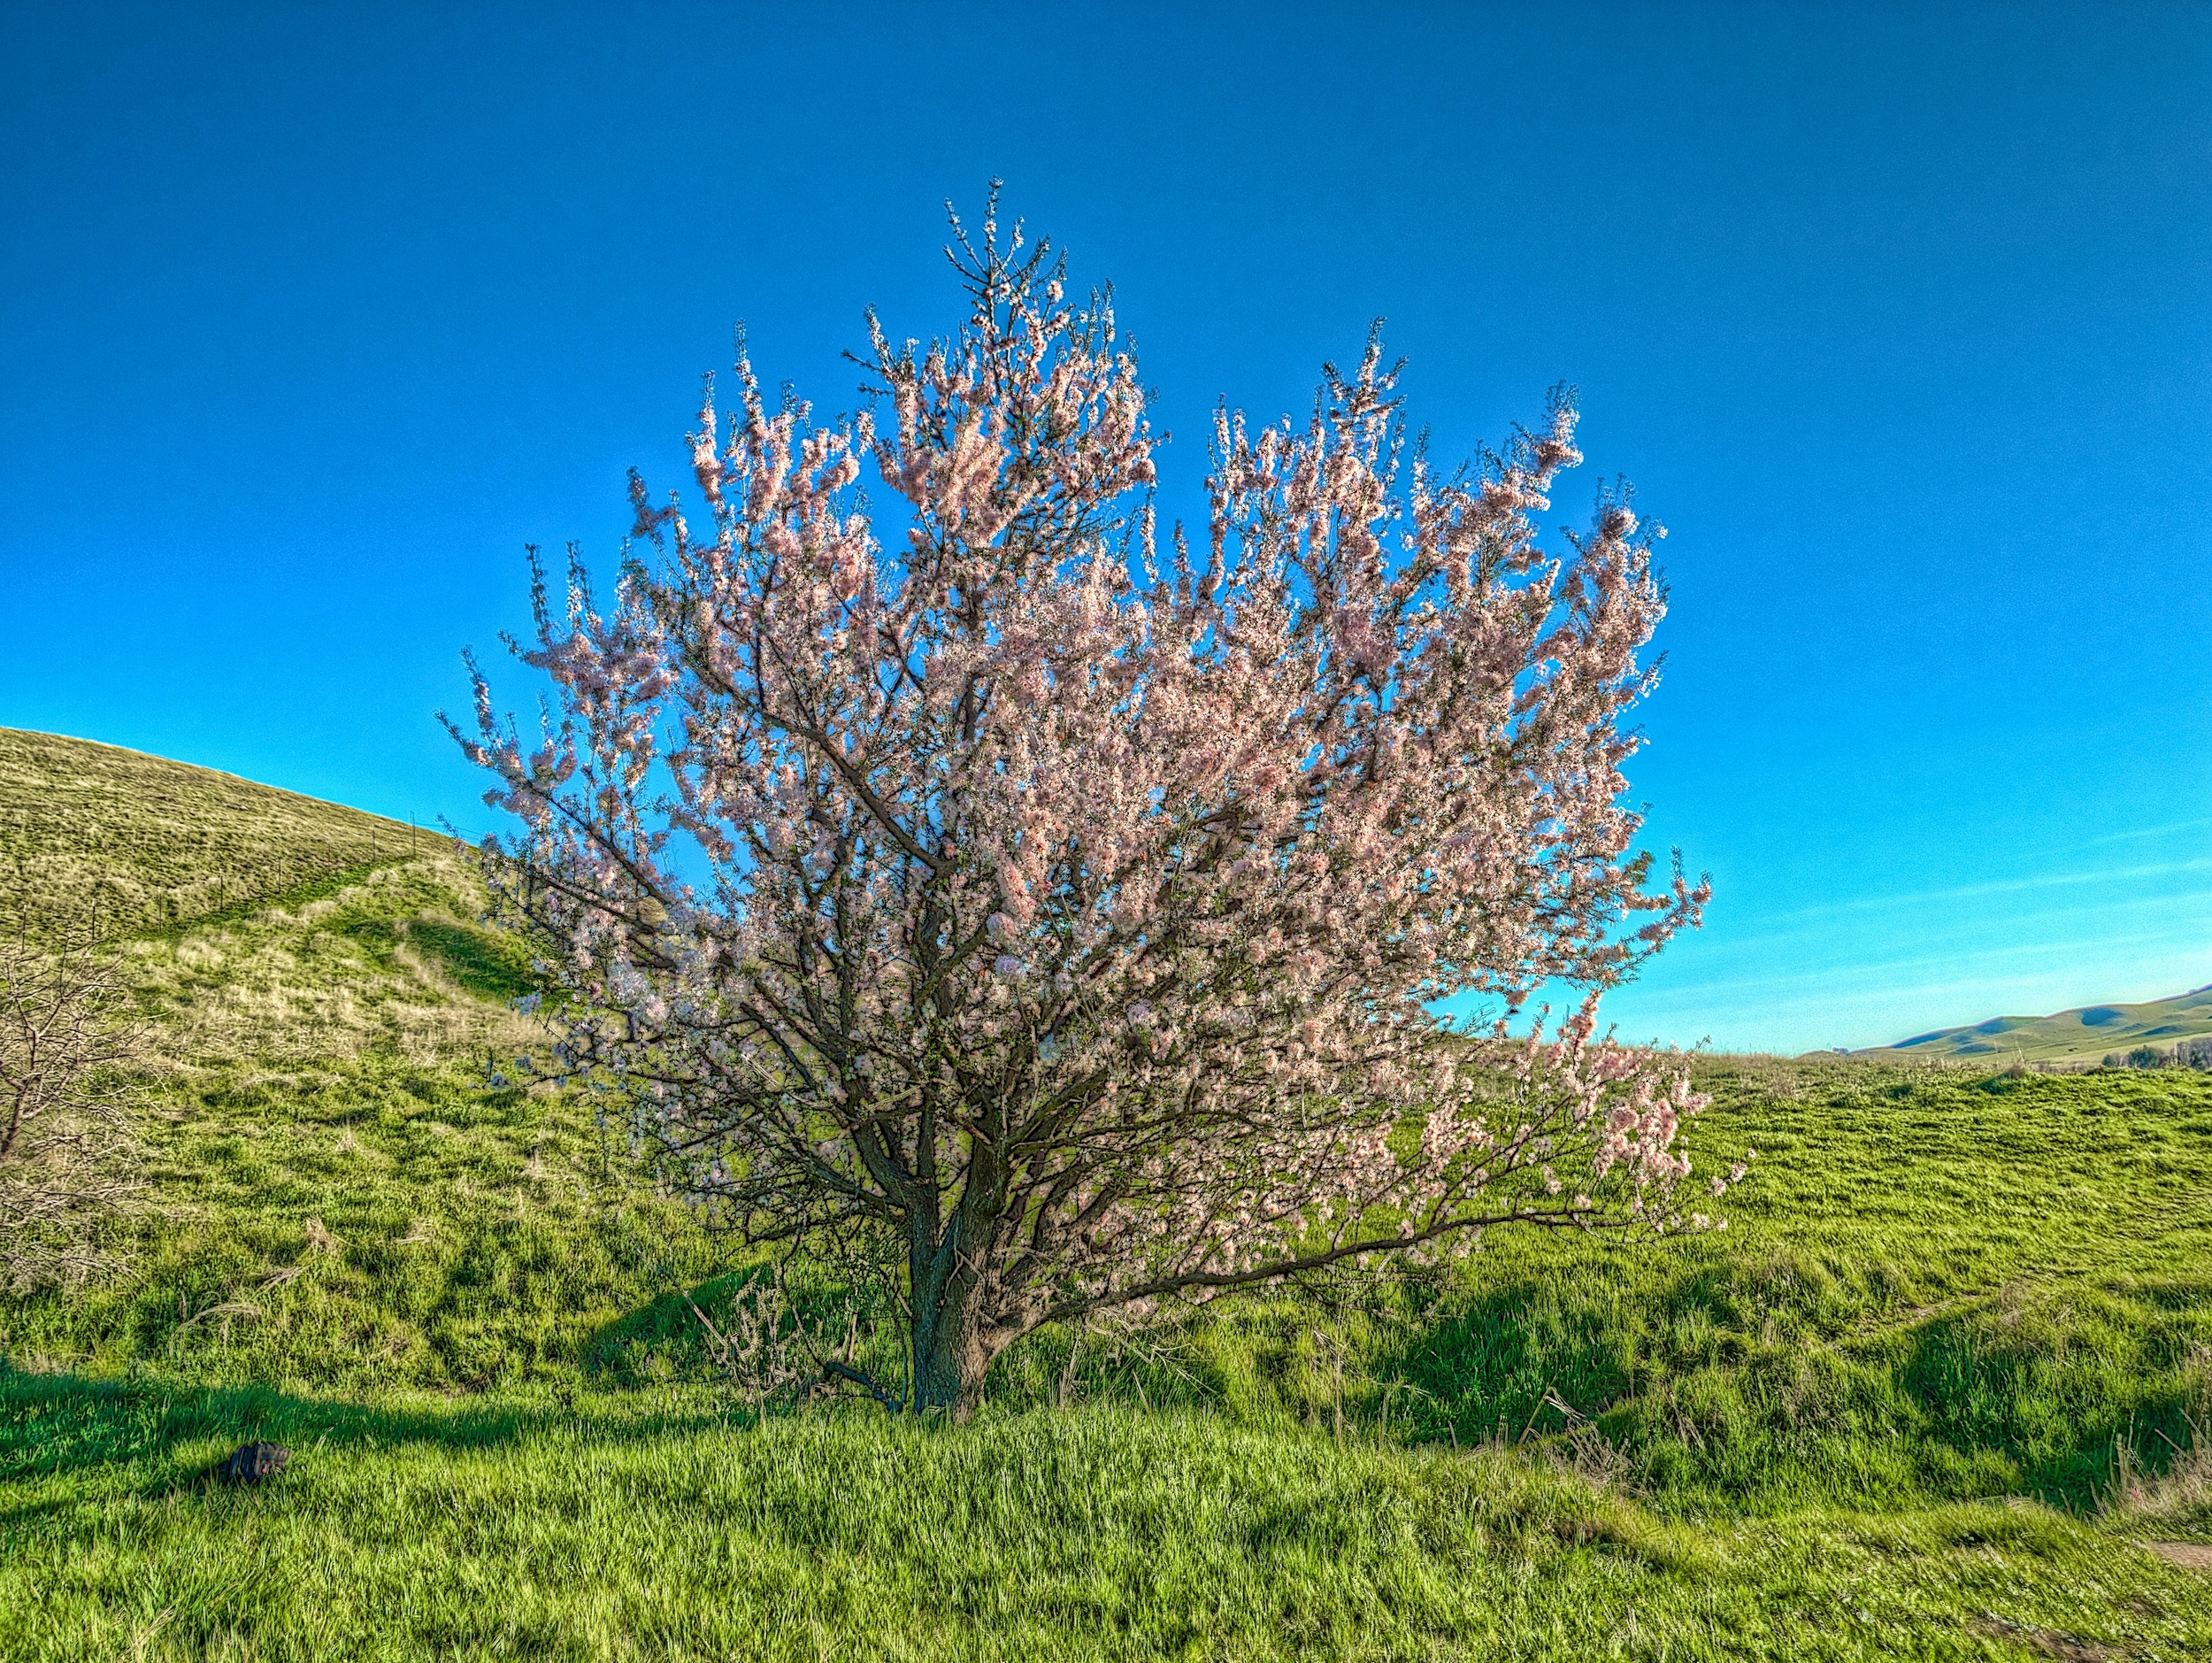 Along the hillside, a lone cherry tree blossoms.